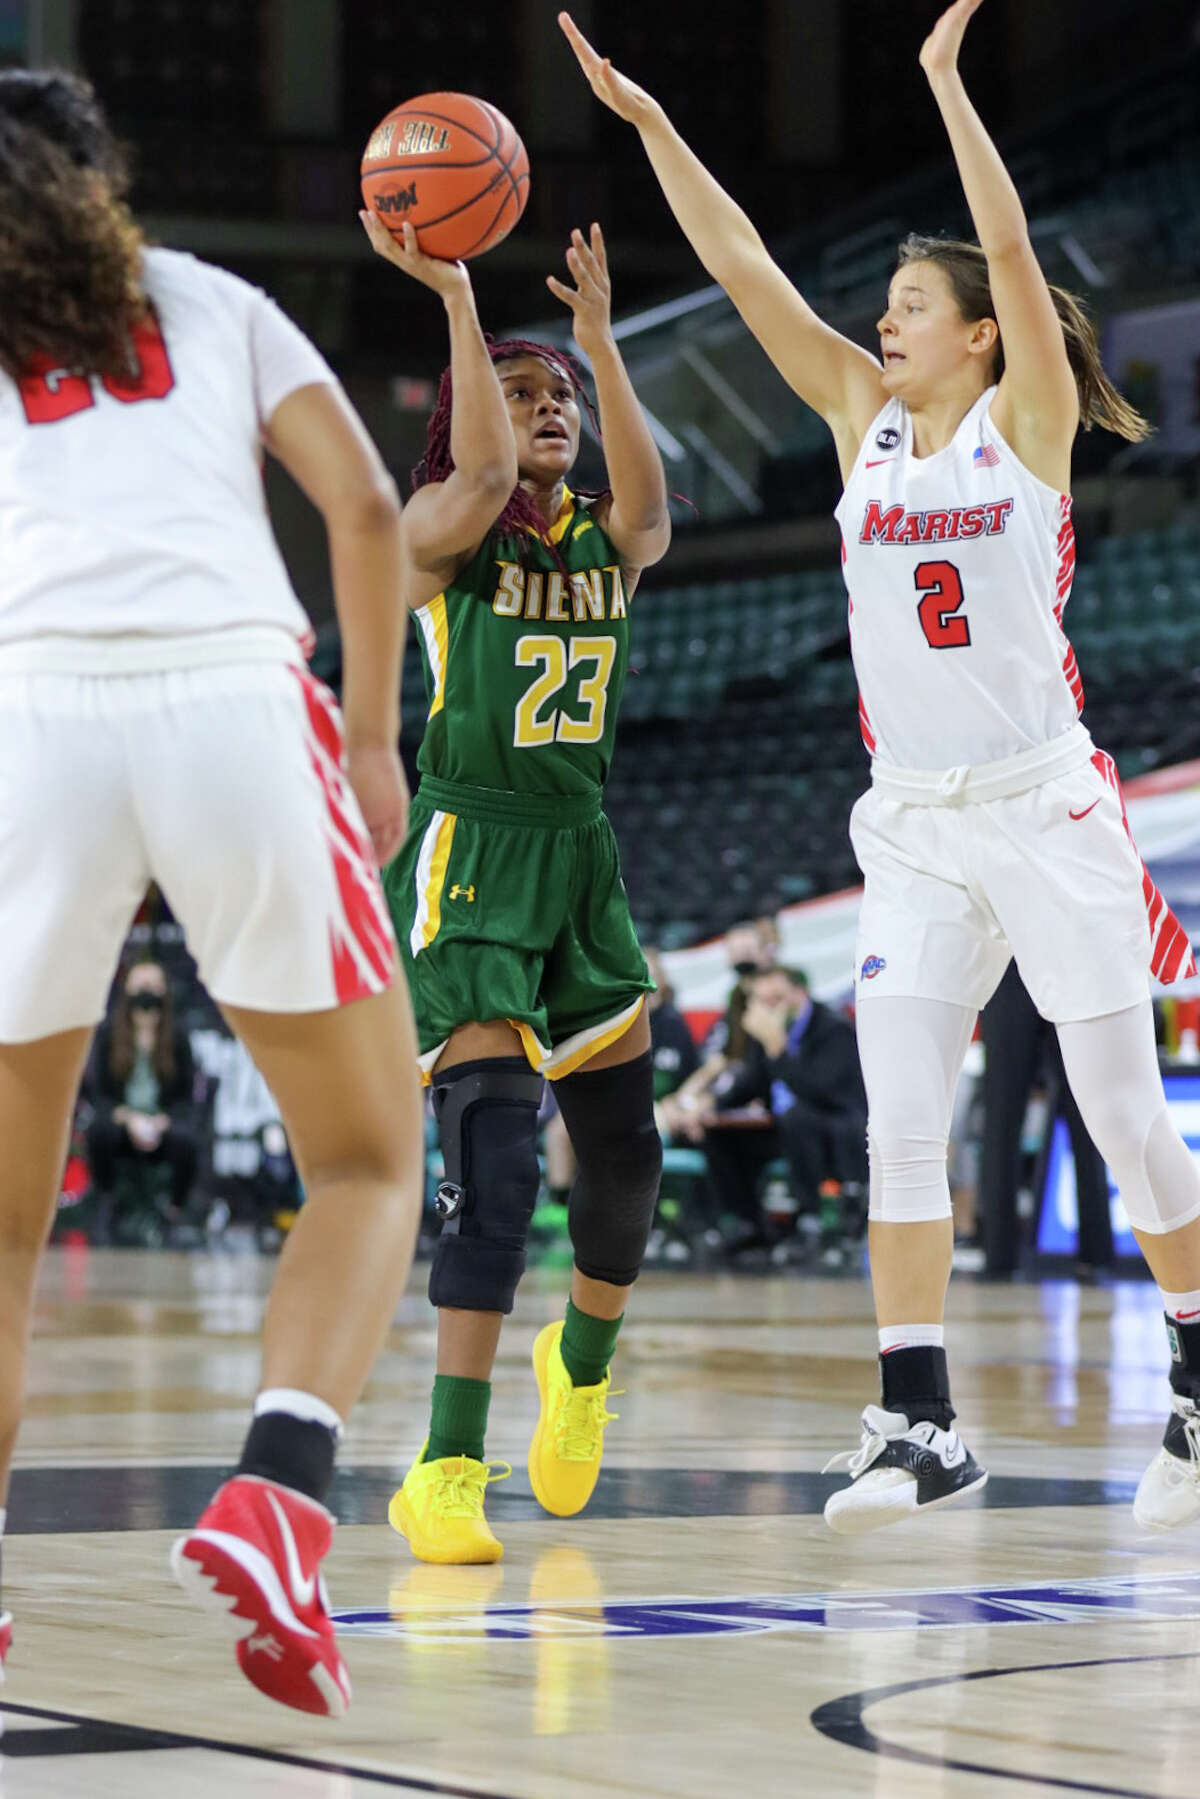 Siena's Isis Young puts up a shot in from of Marist's Allie Best in their MAAC Tournament quarterfinal on Wednesday, March 10, 2021. Young finished with 11 points.